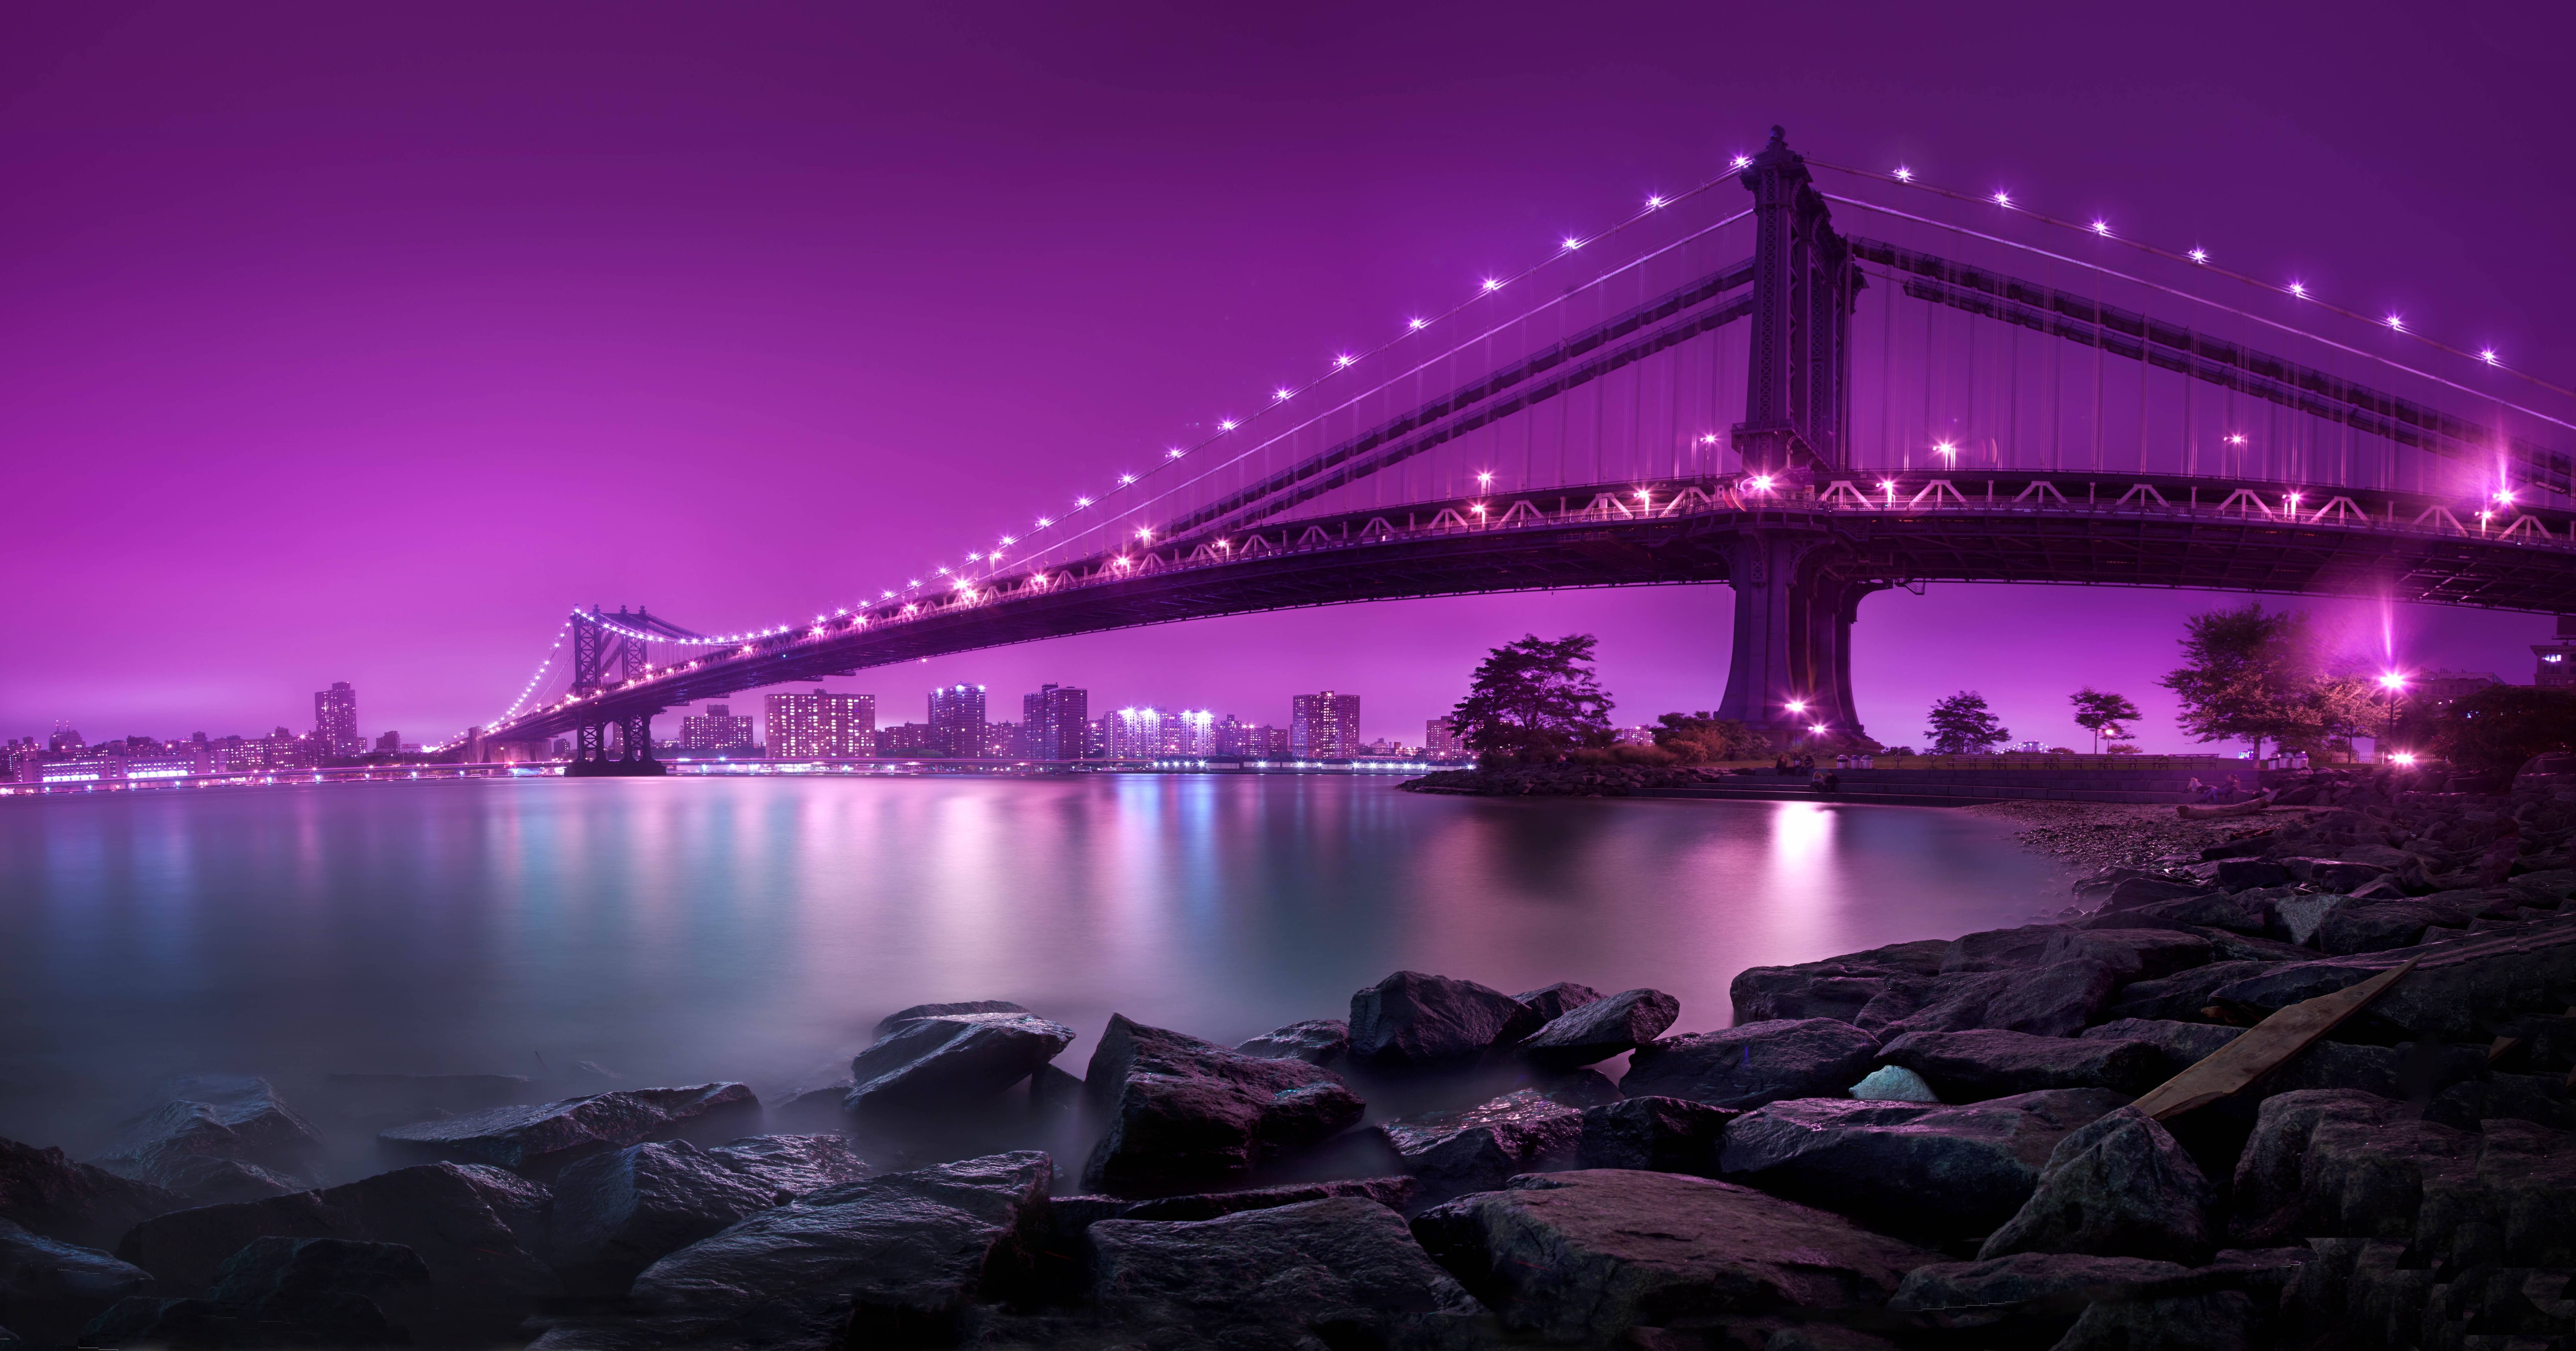 Photo Wallpaper Awesome Bridge wallpaper